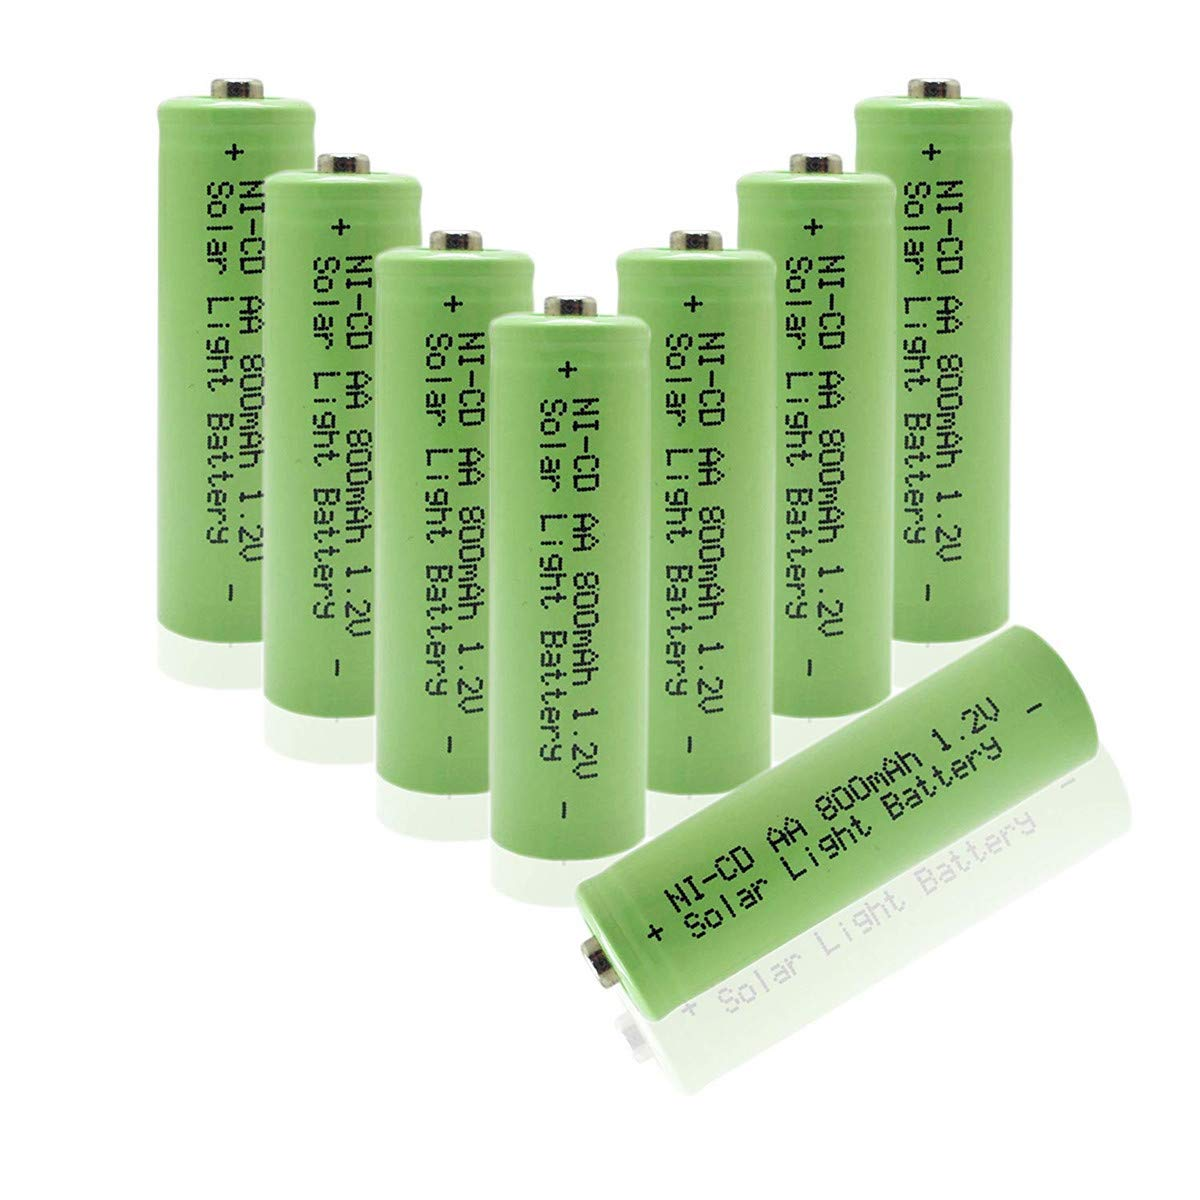 QBLPOWER 800mAh Rechargeable Battery Outdoor